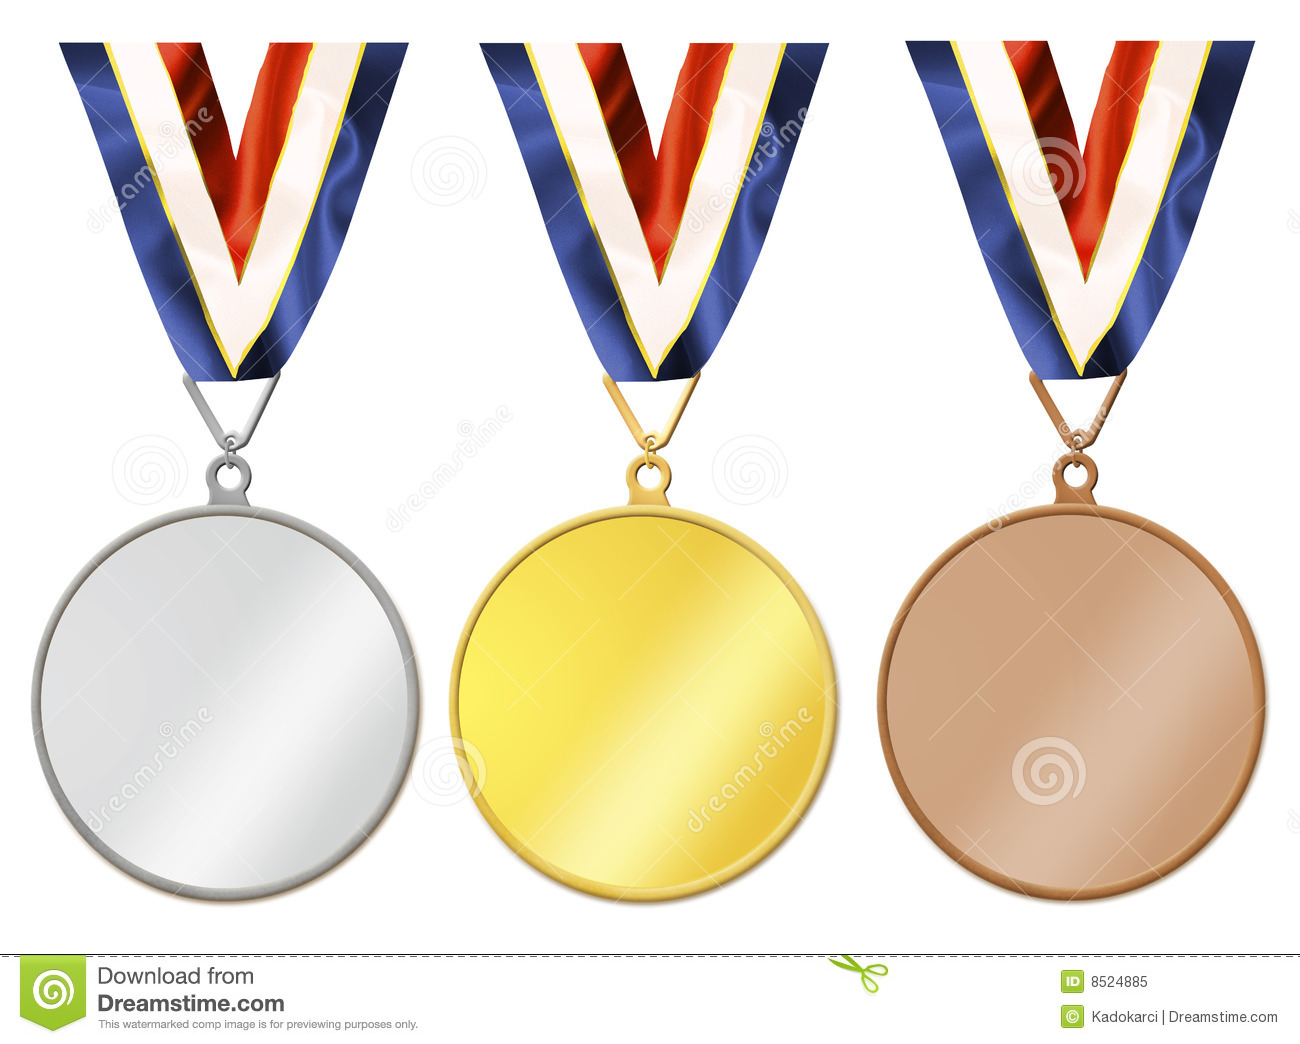 Olympic Medal Clipart at GetDrawings.com.